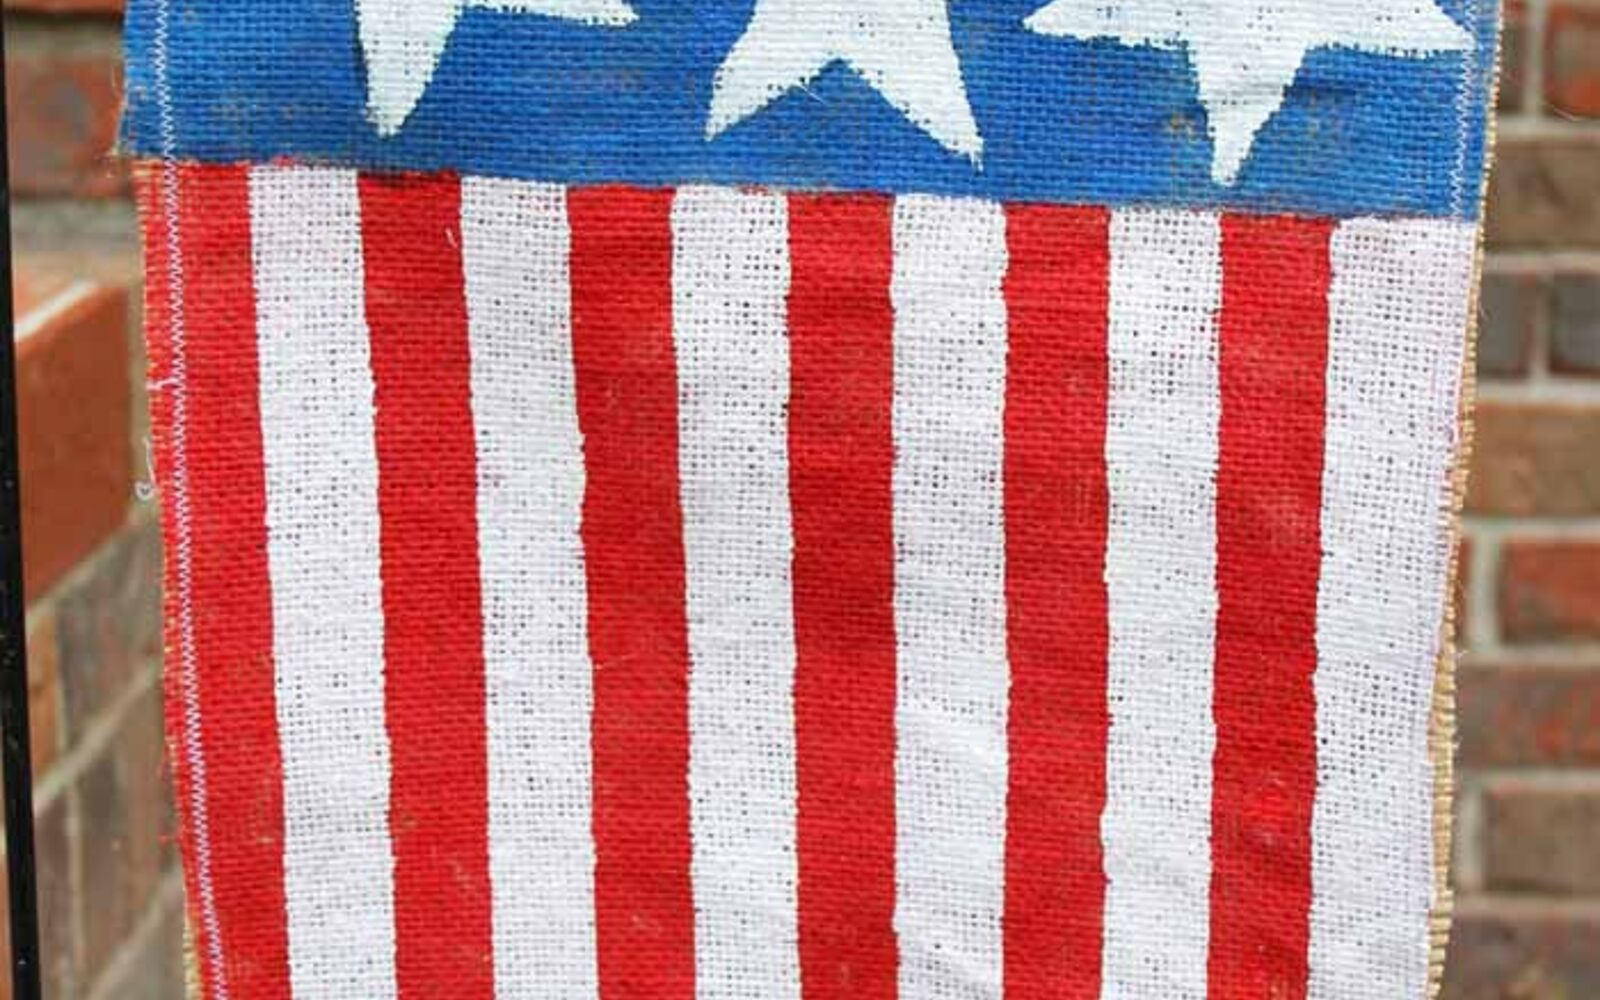 s 30 adorable diy ideas for july 4th, Make a cute flag from burlap